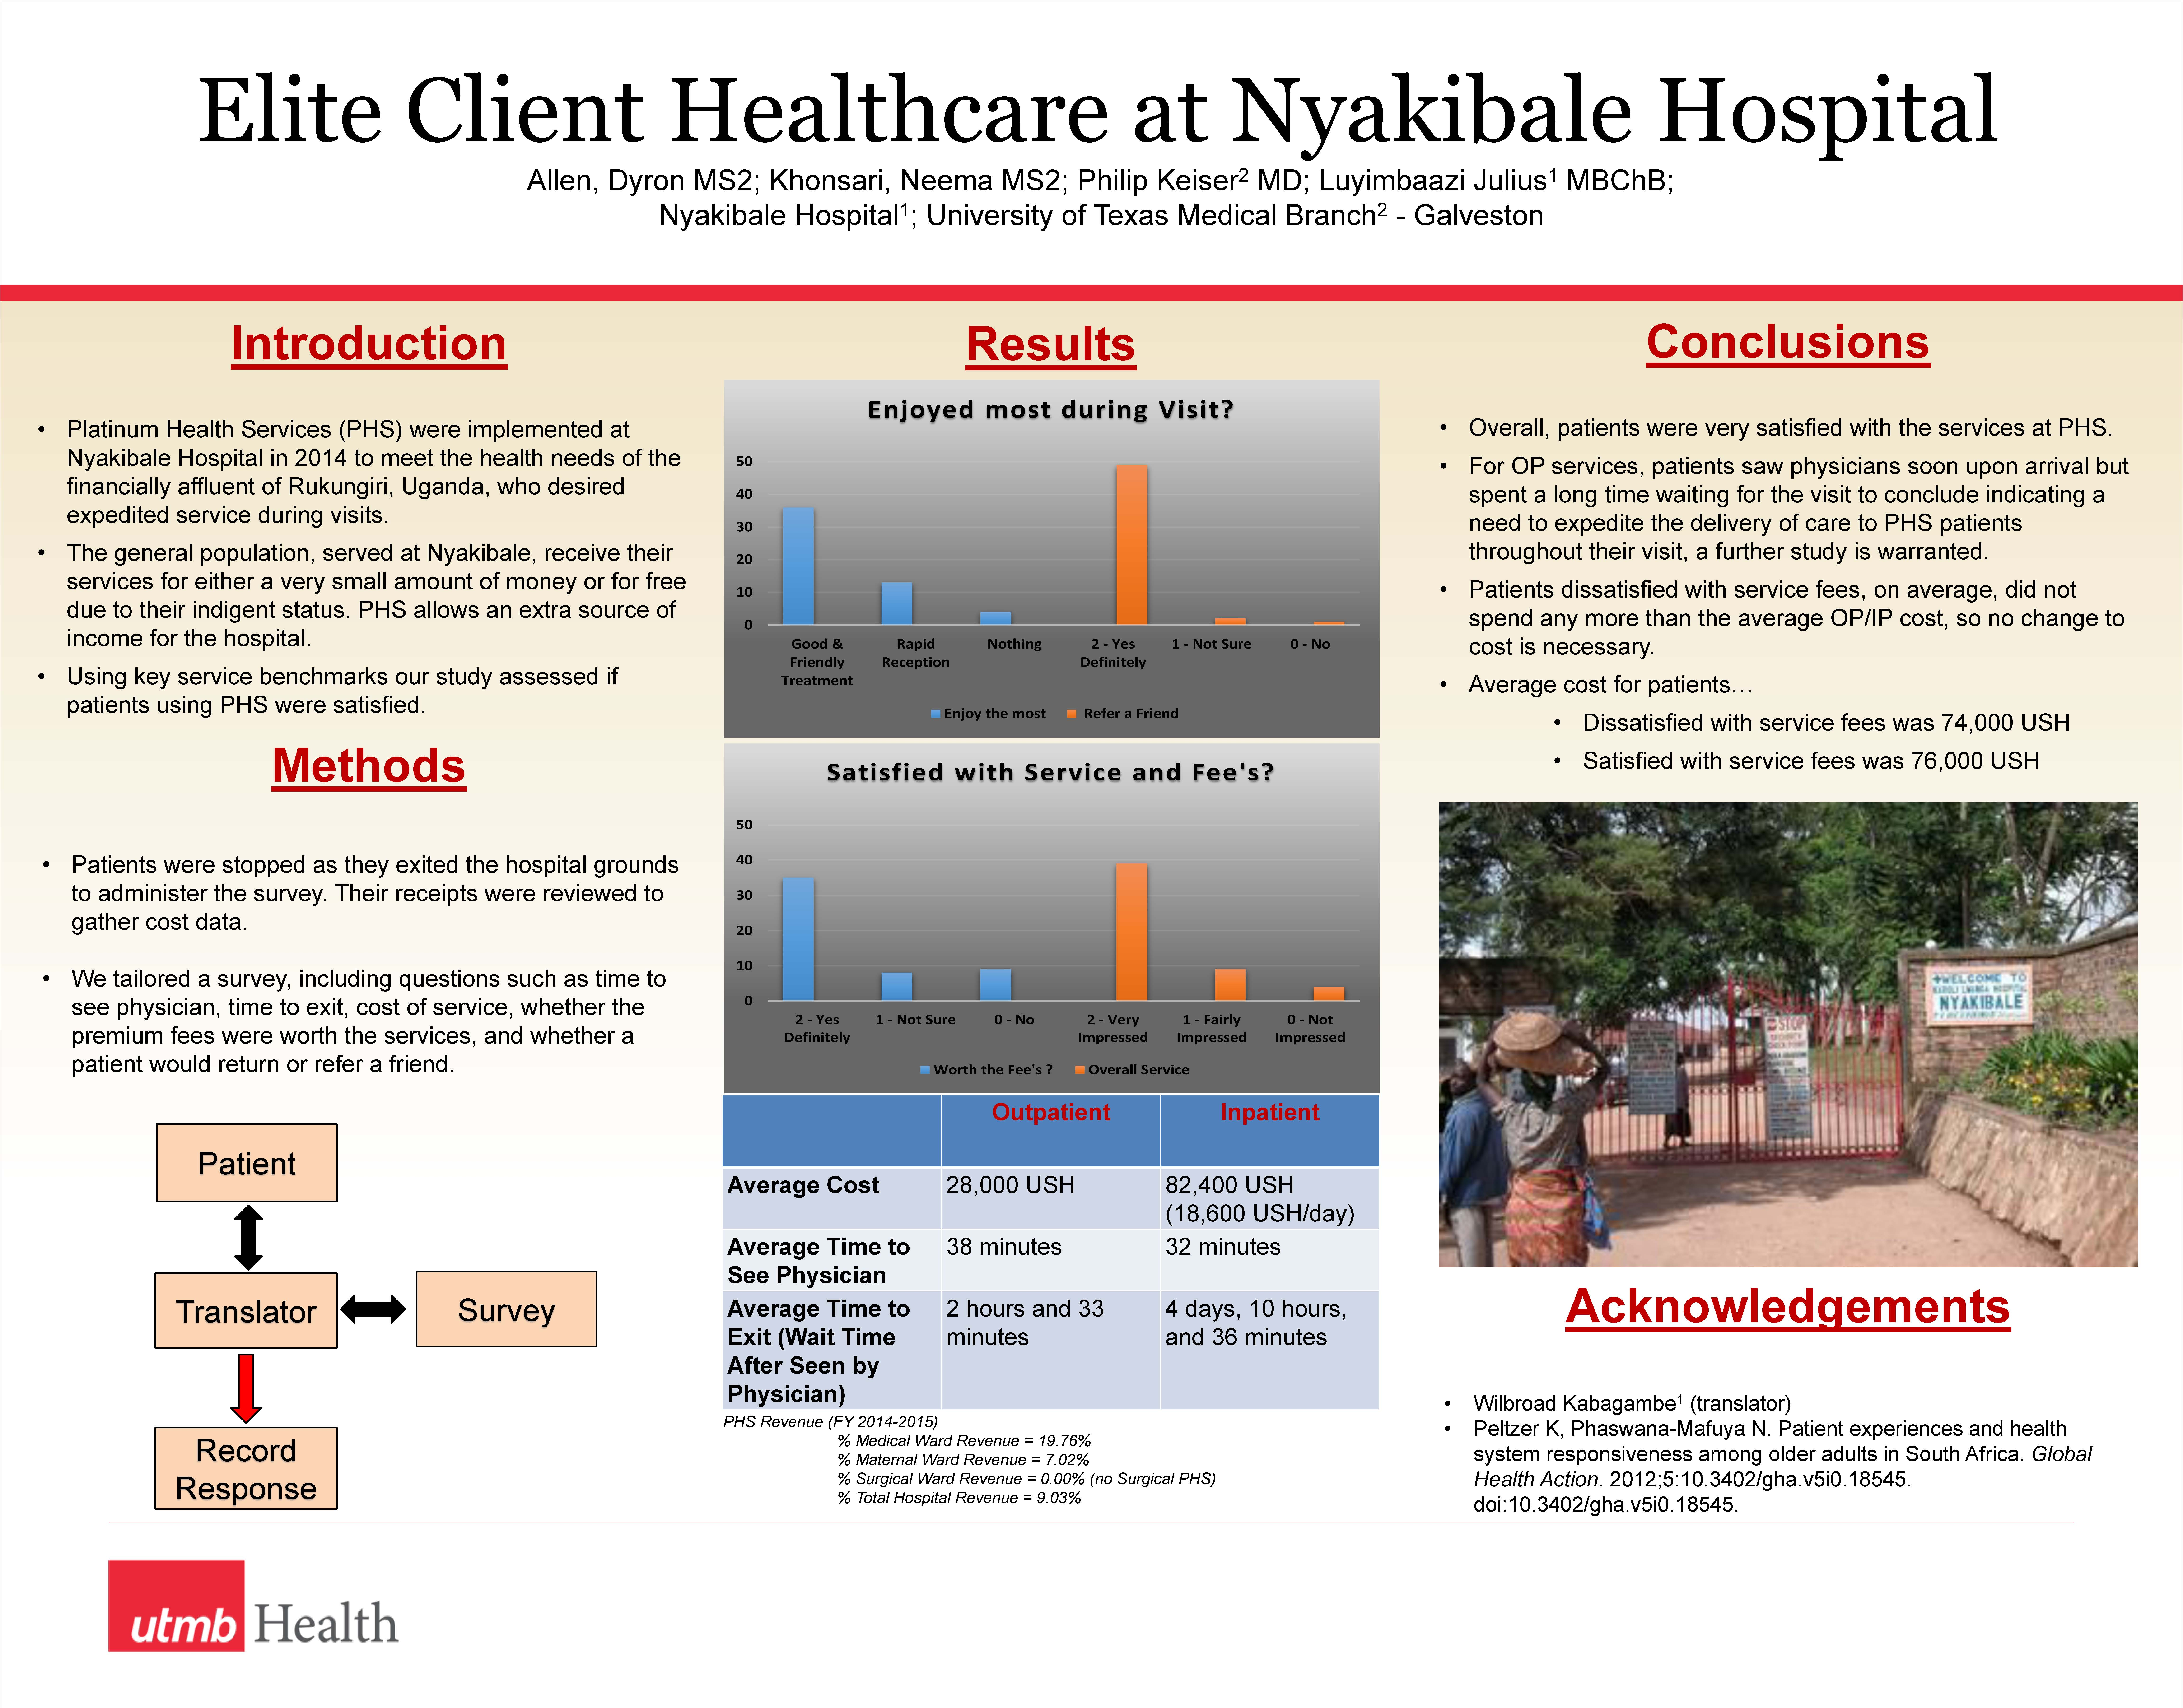 Dyron, Elite Client Healthcare